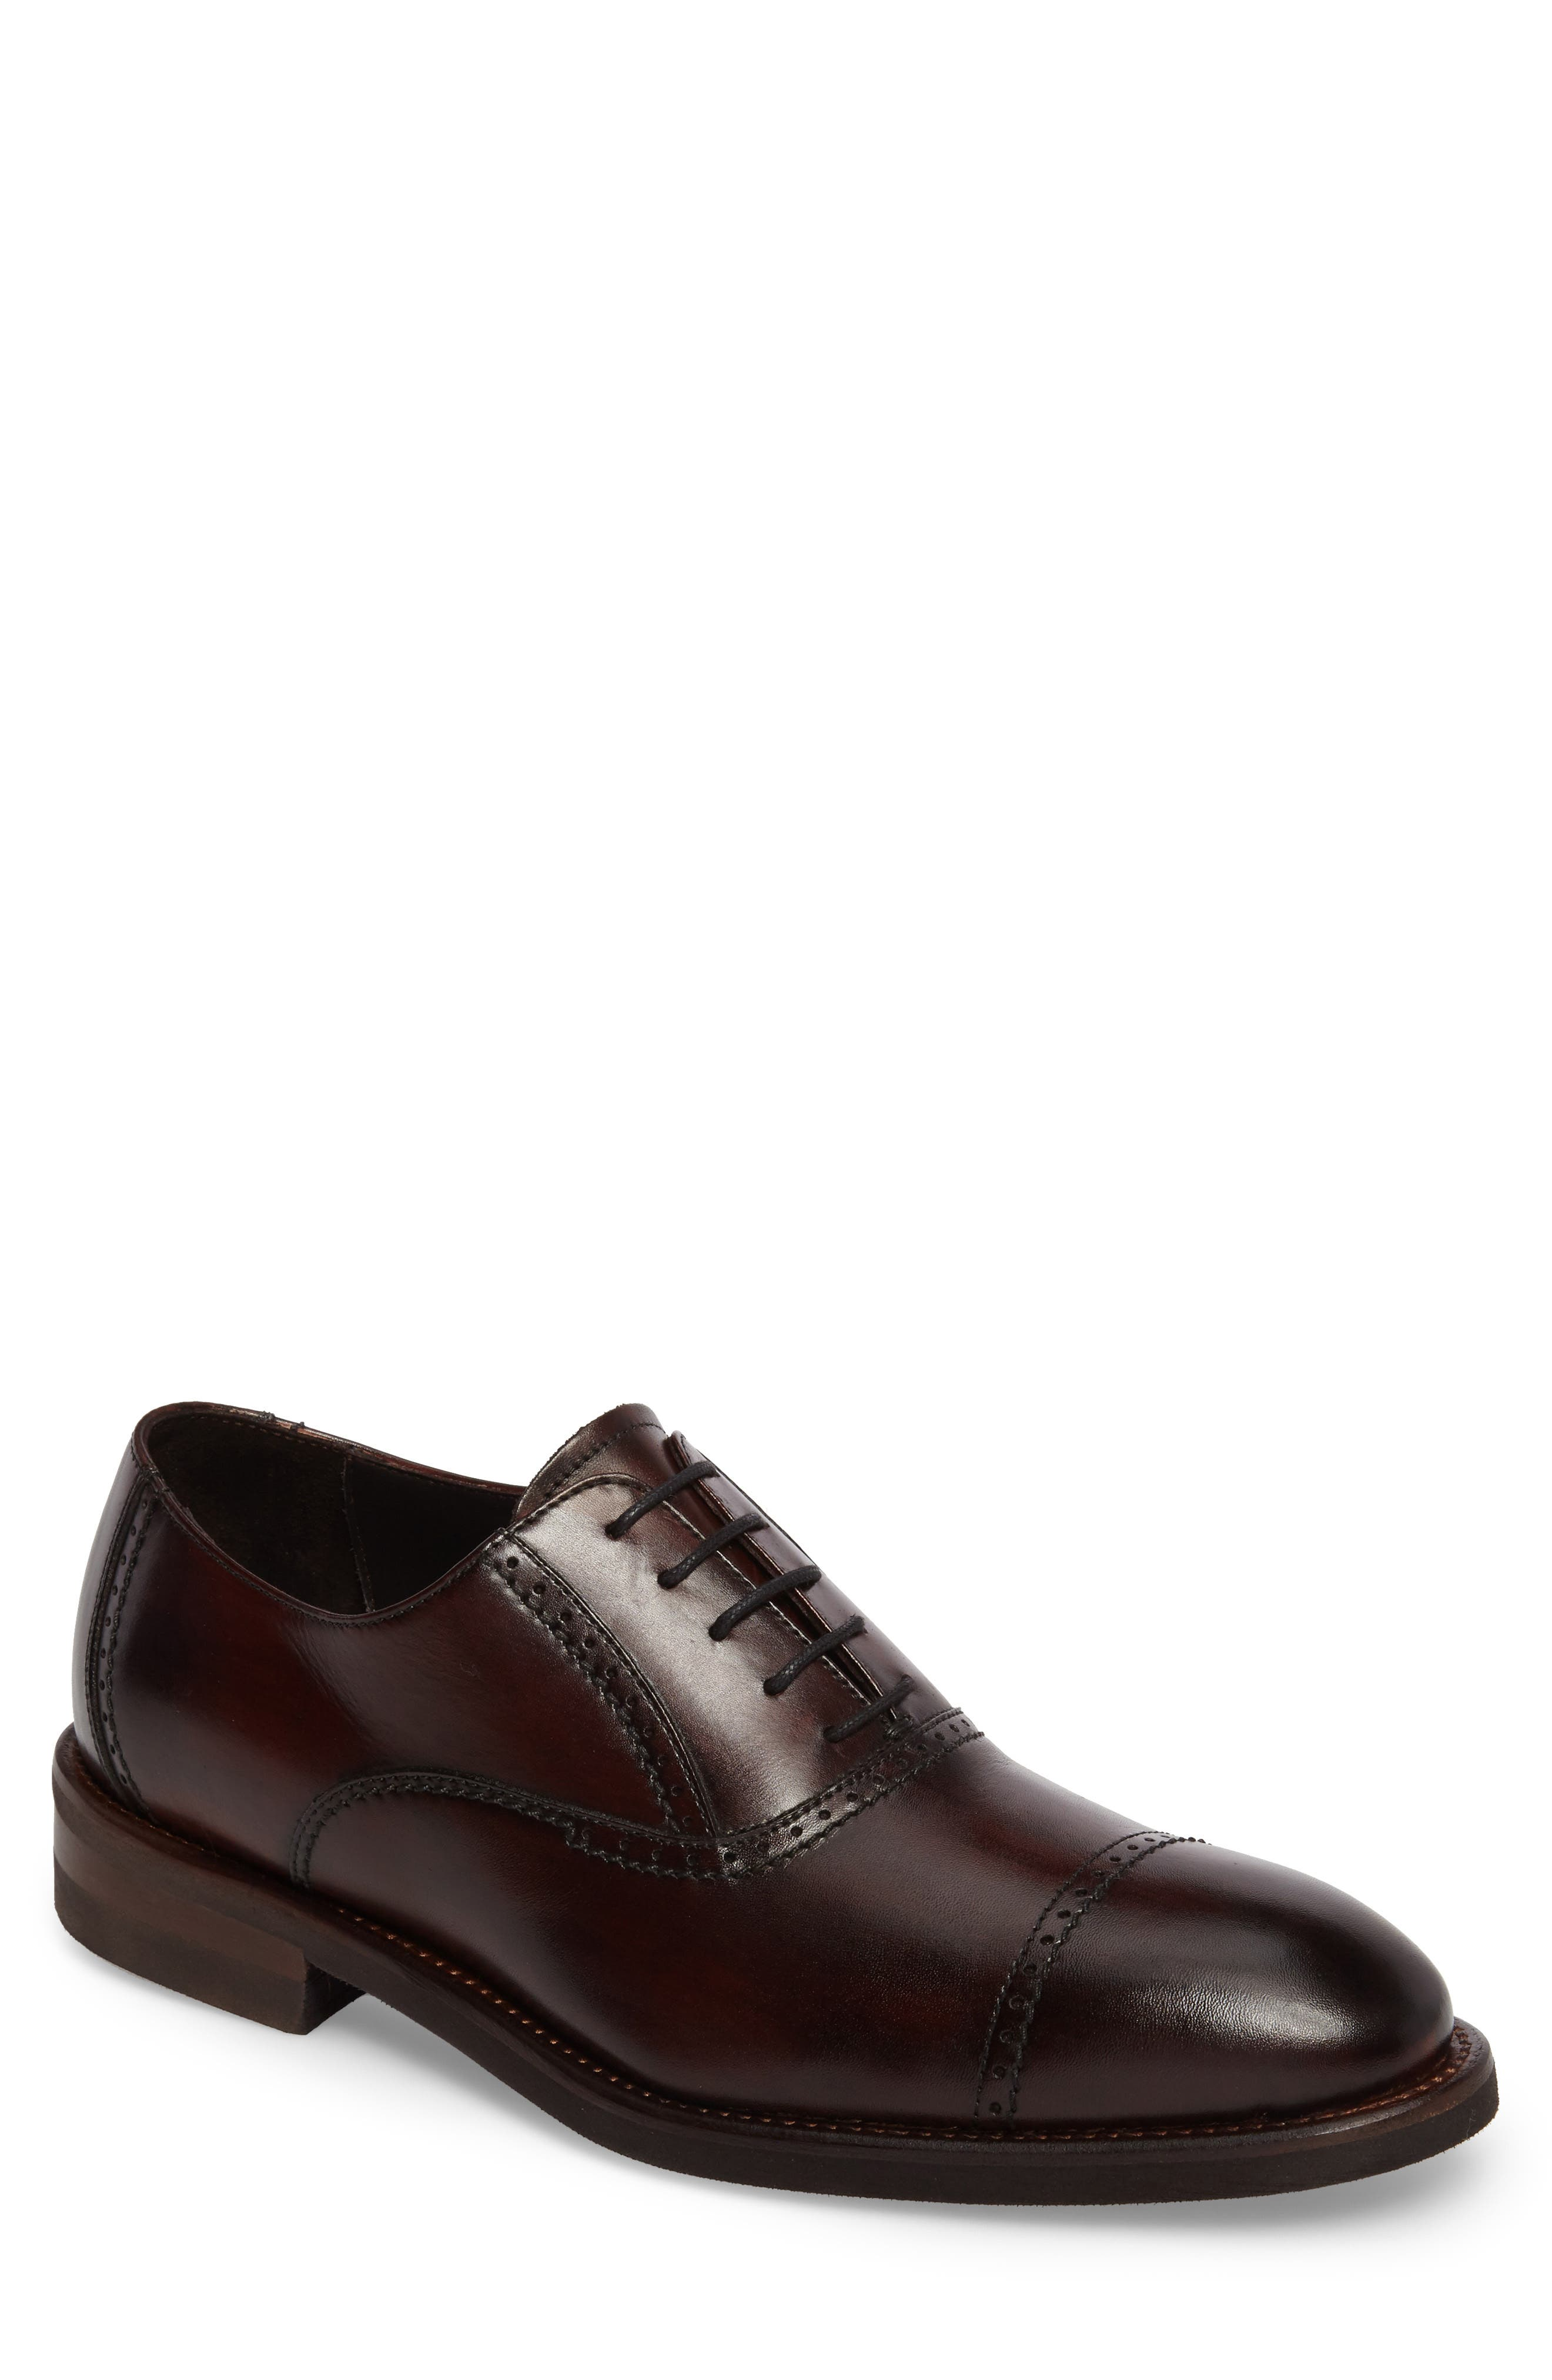 Alternate Image 1 Selected - Monte Rosso Borgo Cap Toe Oxford (Men)